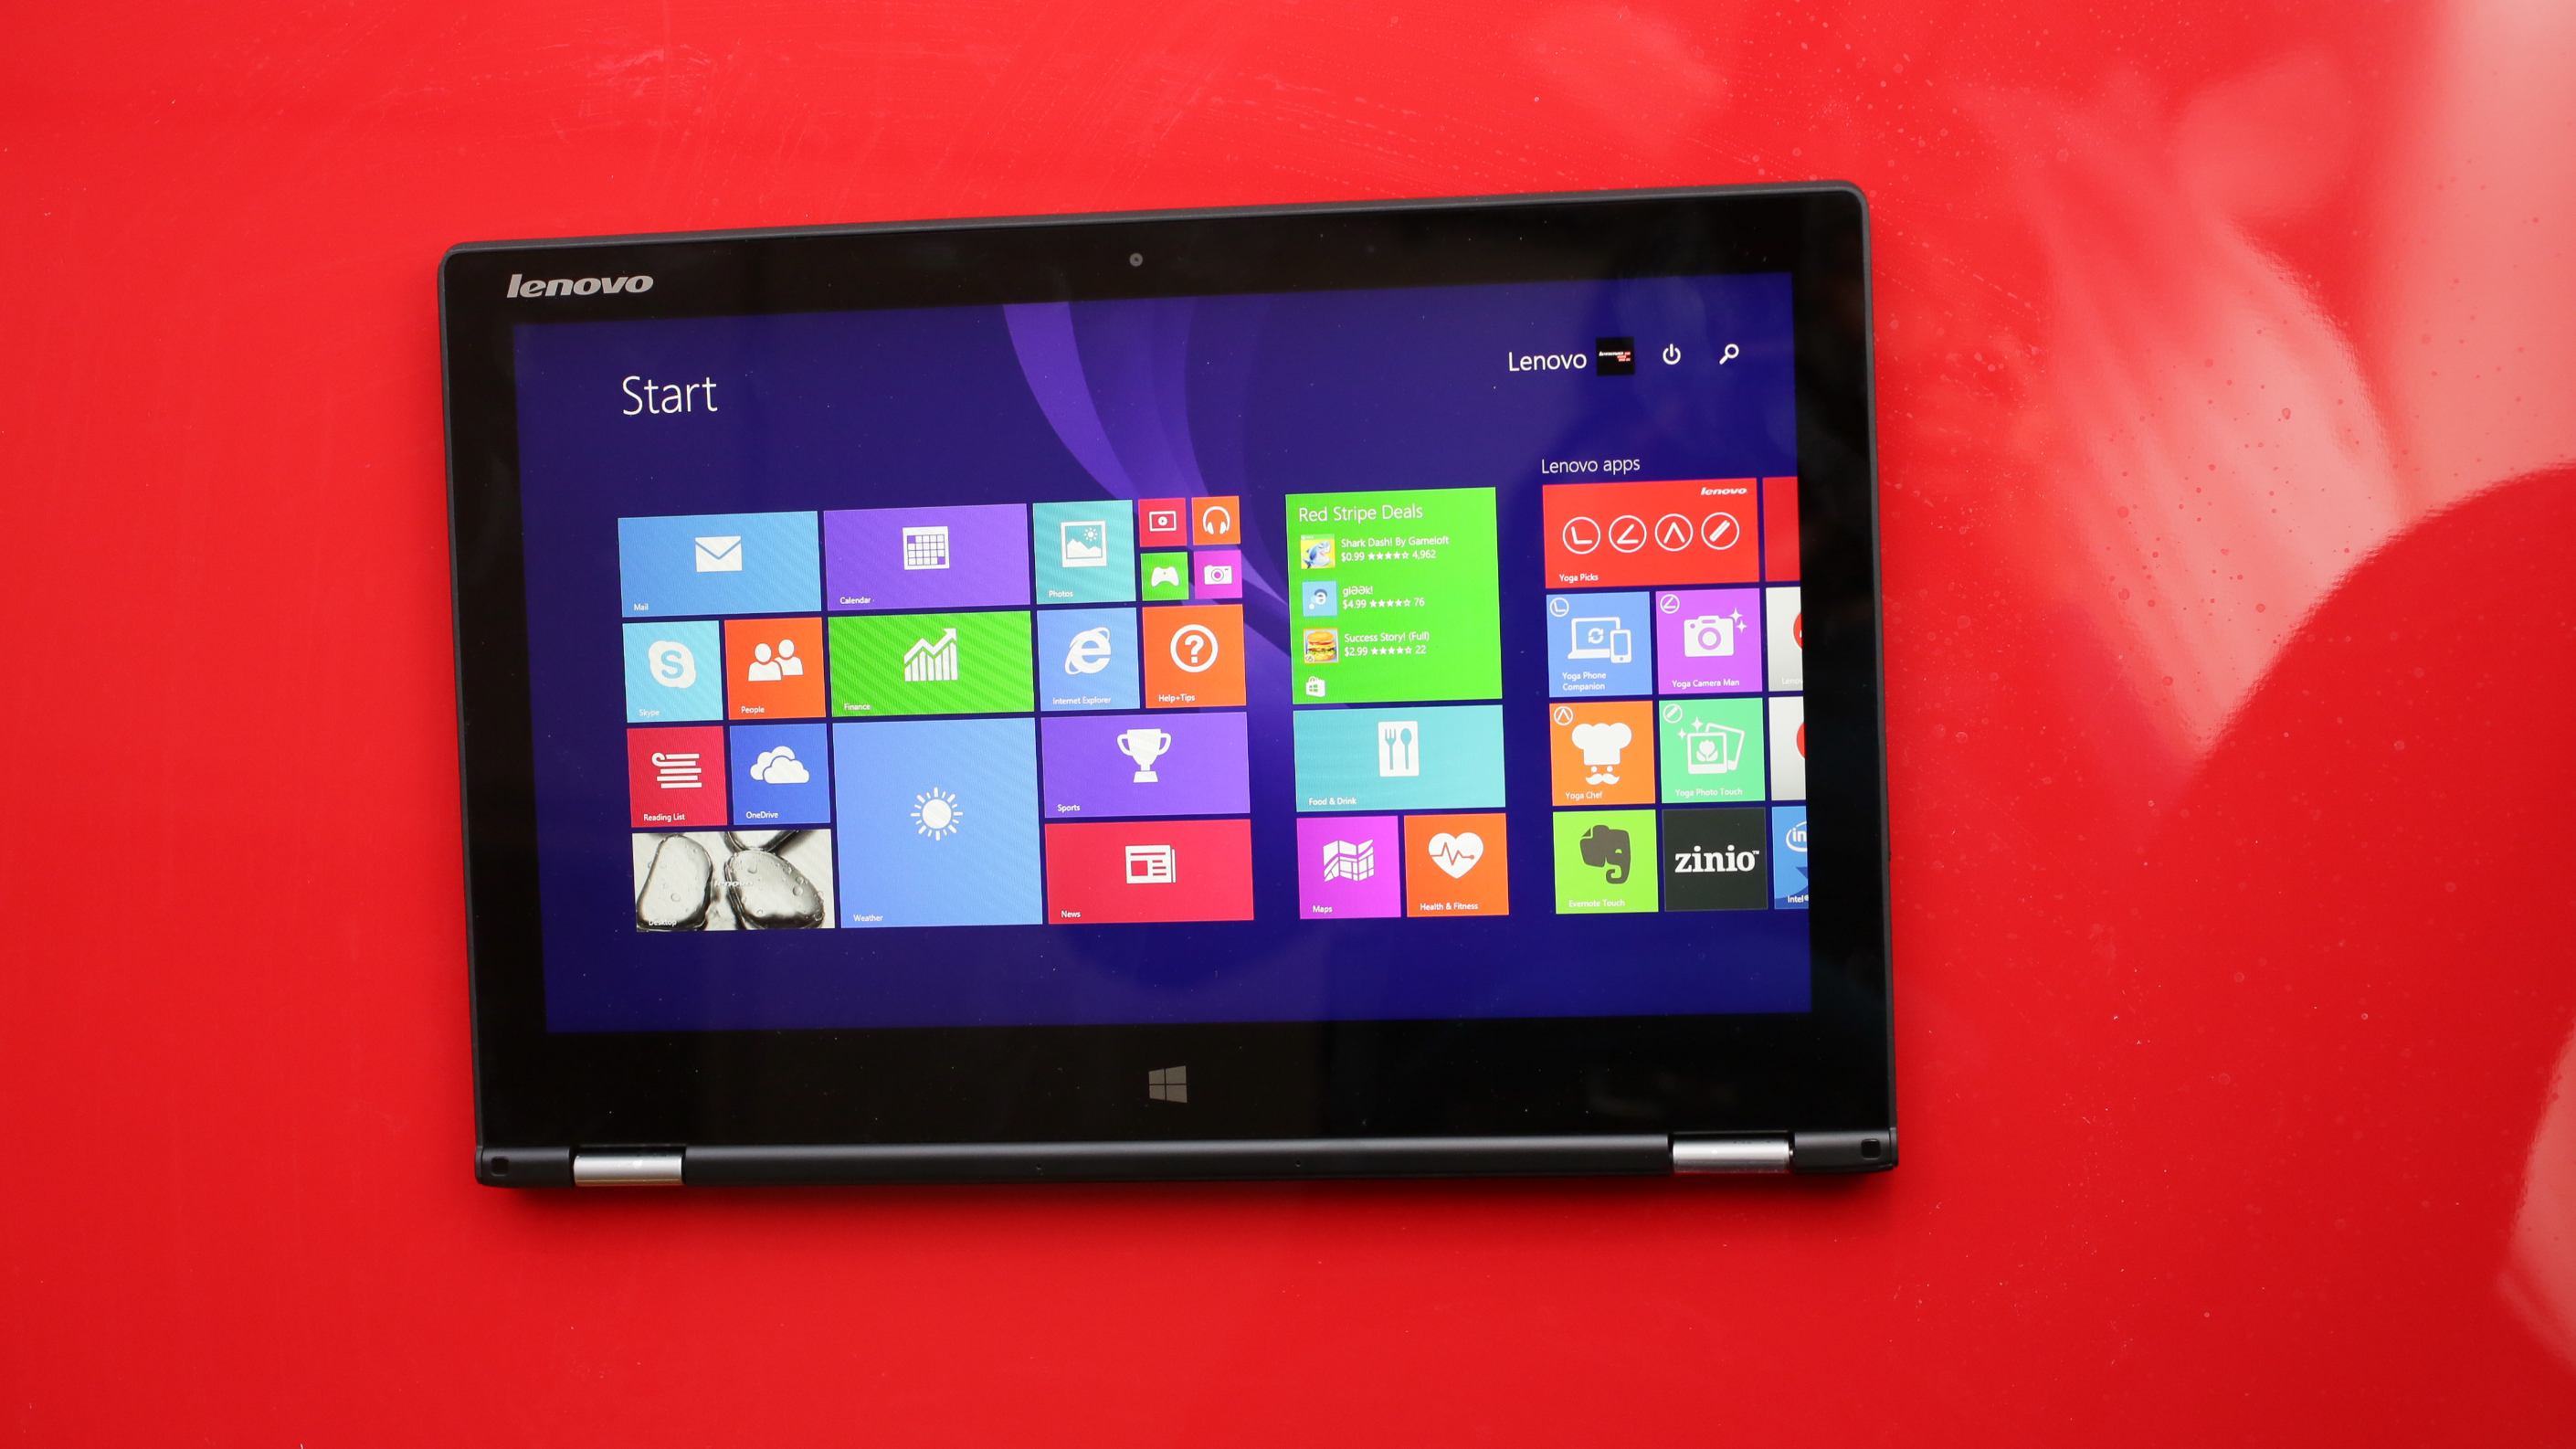 lenovo-yoga-2-13-inch-product-photos13.jpg